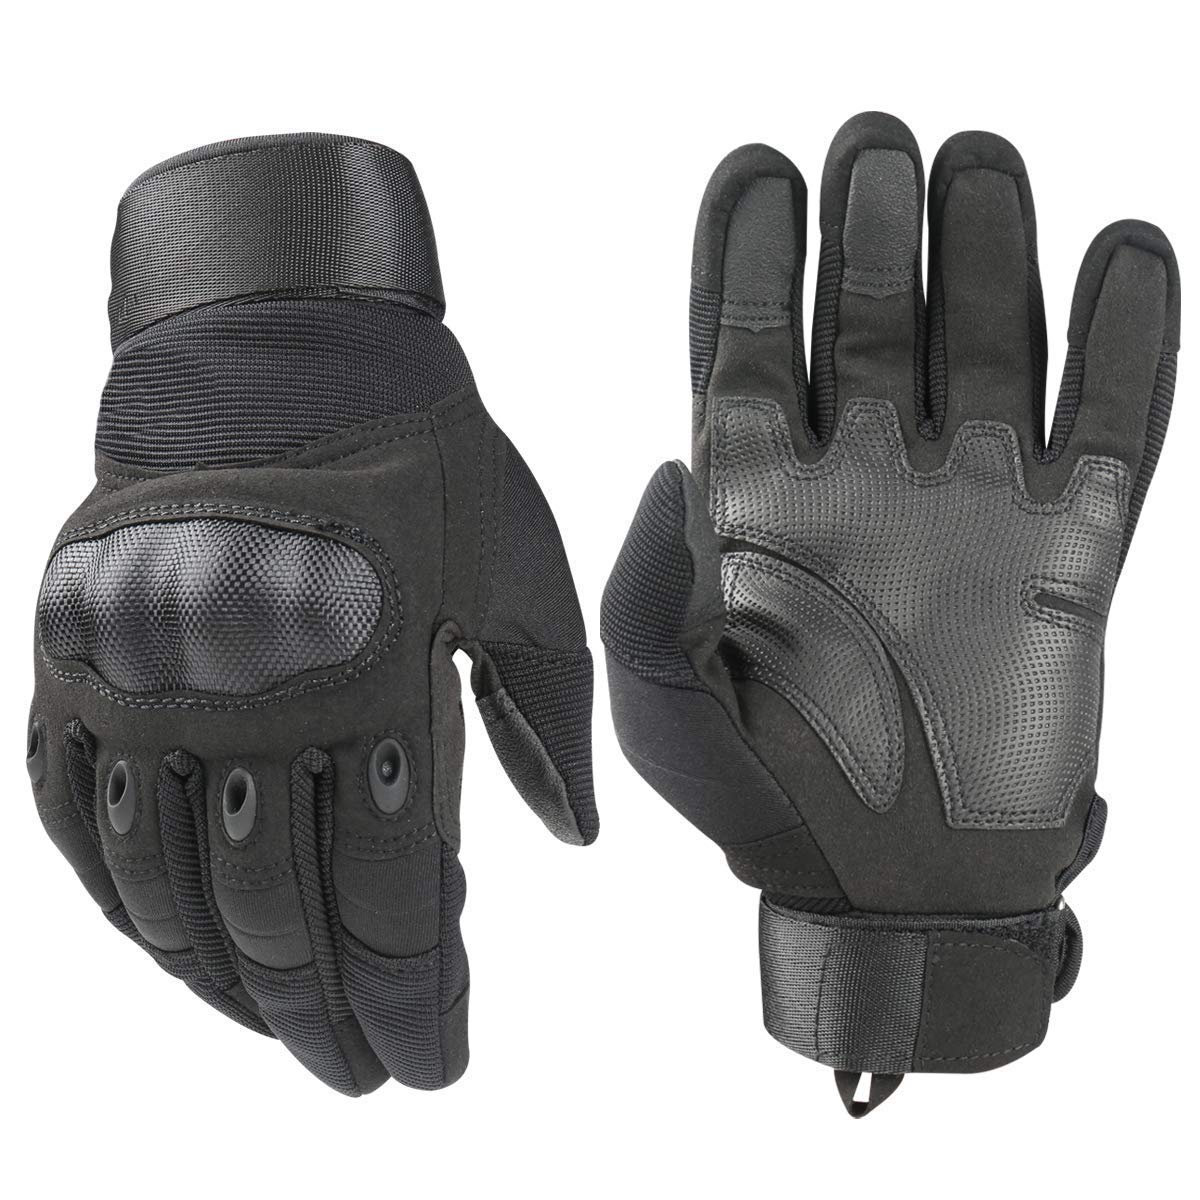 Military Tactical Airsoft Army Shooting Gear Hunting Full Finger Gloves UK